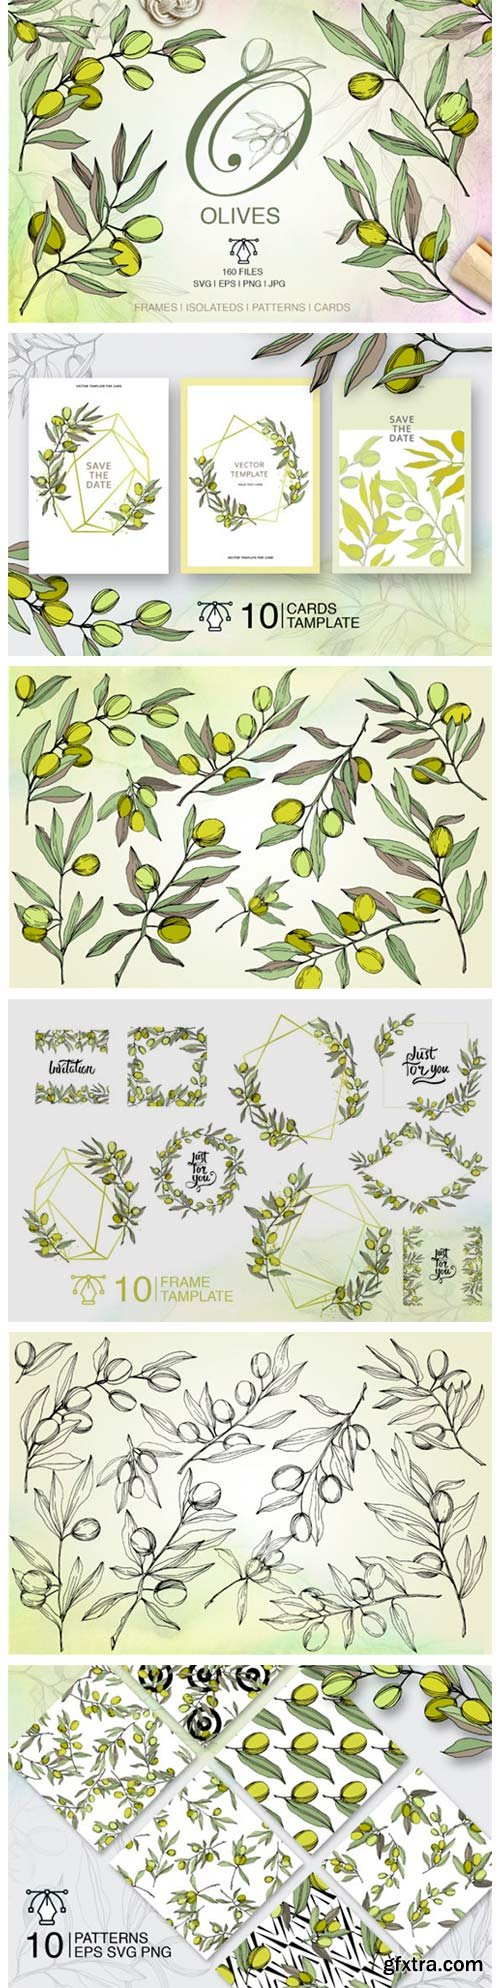 Olives Vector Watercolor Set 4751969